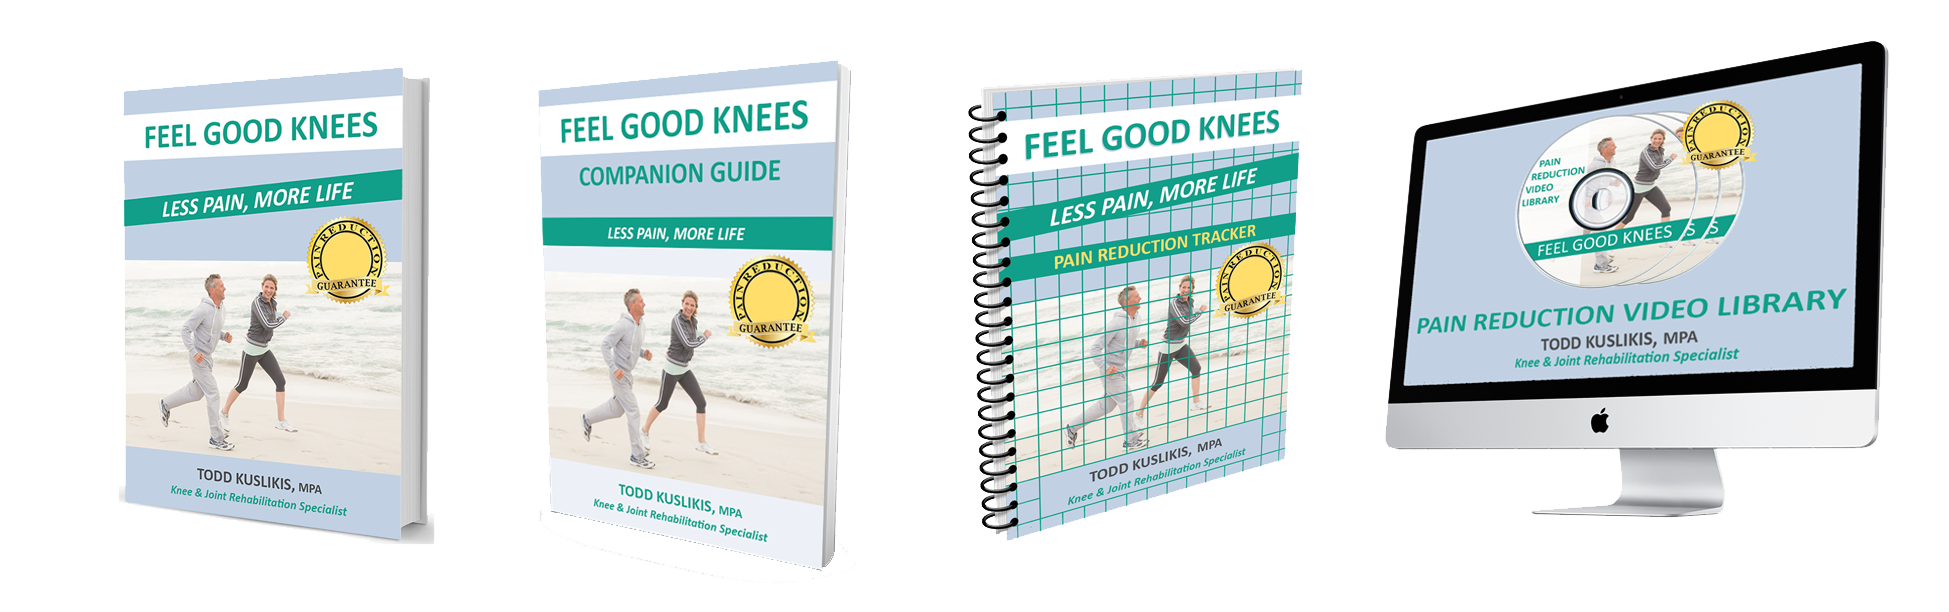 PDF) Feel Good Knees for Fast Pain Relief